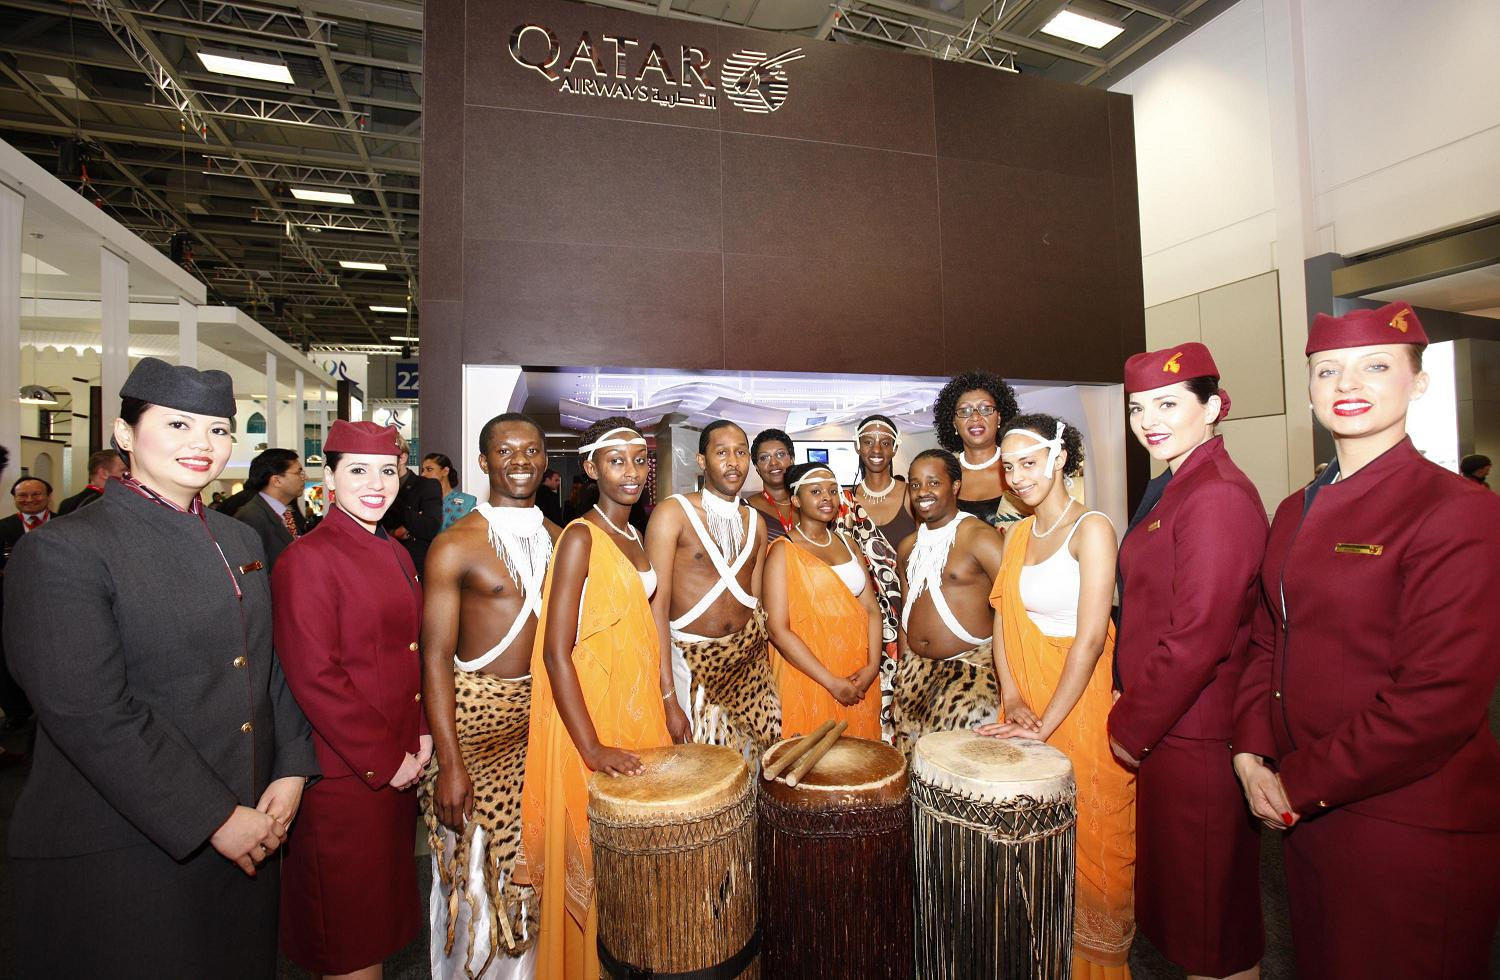 QATAR AIRWAYS - A. Magai